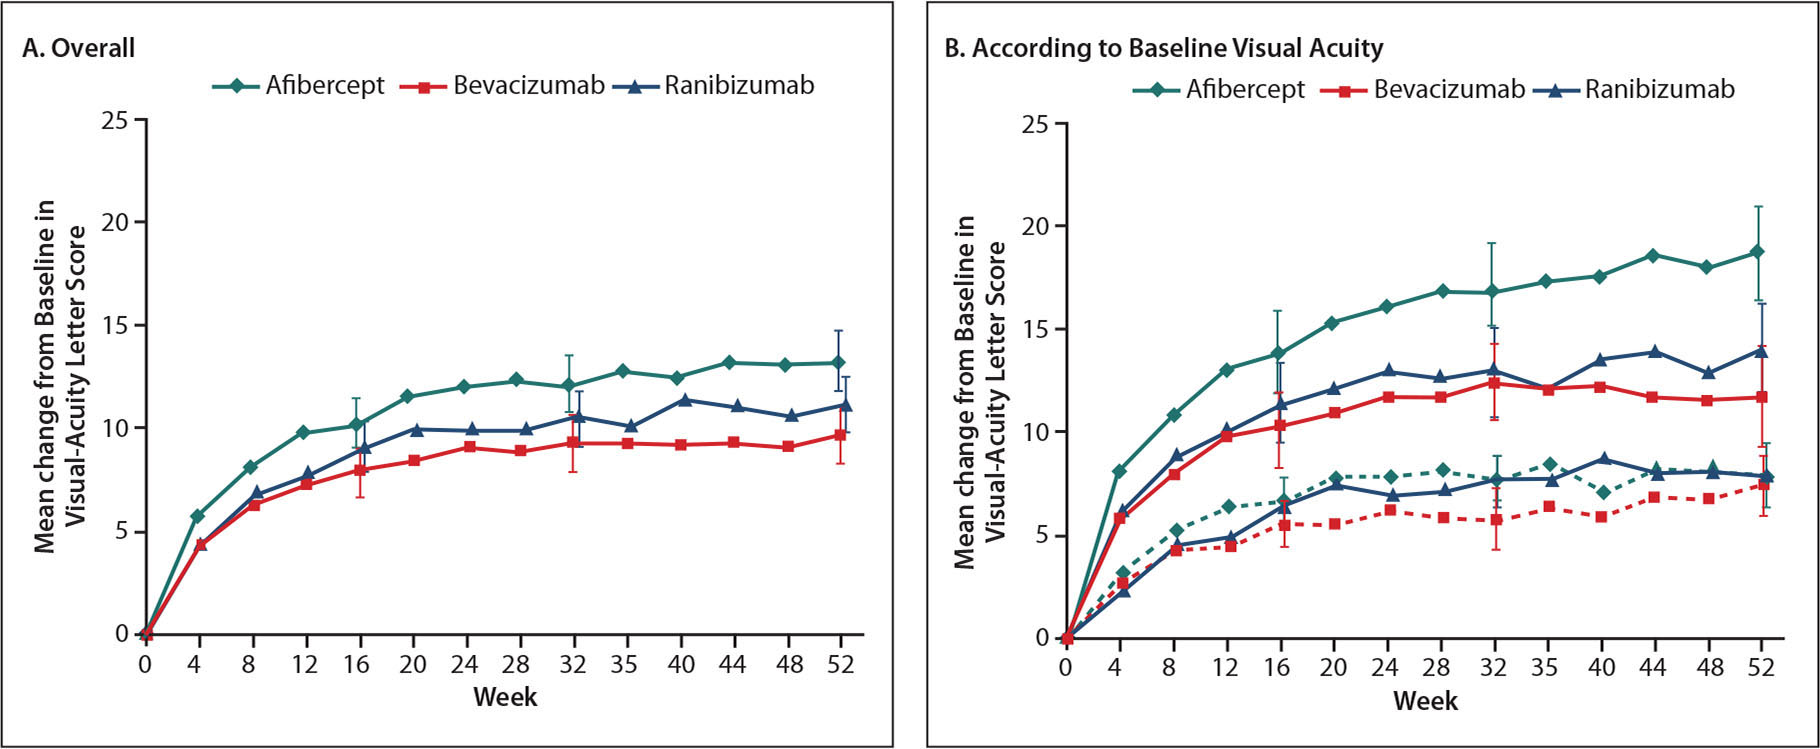 �A;Mean change in visual acuity over time.�A;Shown are the changes in visual acuity overall (Panel A) and according to baseline visual acuity (Panel B). In Panel B, solid lines indicate baseline visual acuity of 20/50 or worse, and dashed lines indicate baseline visual acuity of 20/32 to 20/40. Outlying values were truncated to 3 SD from the mean. The number of eyes assessed at each 4-week interval ranged from 195 to 224 in the aflibercept group, 188 to 218 in the bevacizumab group, and 188 to 218 in the ranibizumab group.�A;Reprinted with permission from: Wells J, Glassman A, Ayala A, Jampol L, Aiello L, et al. Aflibercept, bevacizumab, or ranibizumab for diabetic macular edema. N Engl J Med. 2015;372(13):1193–203. doi: 10.1056/NEJMoa1414264.